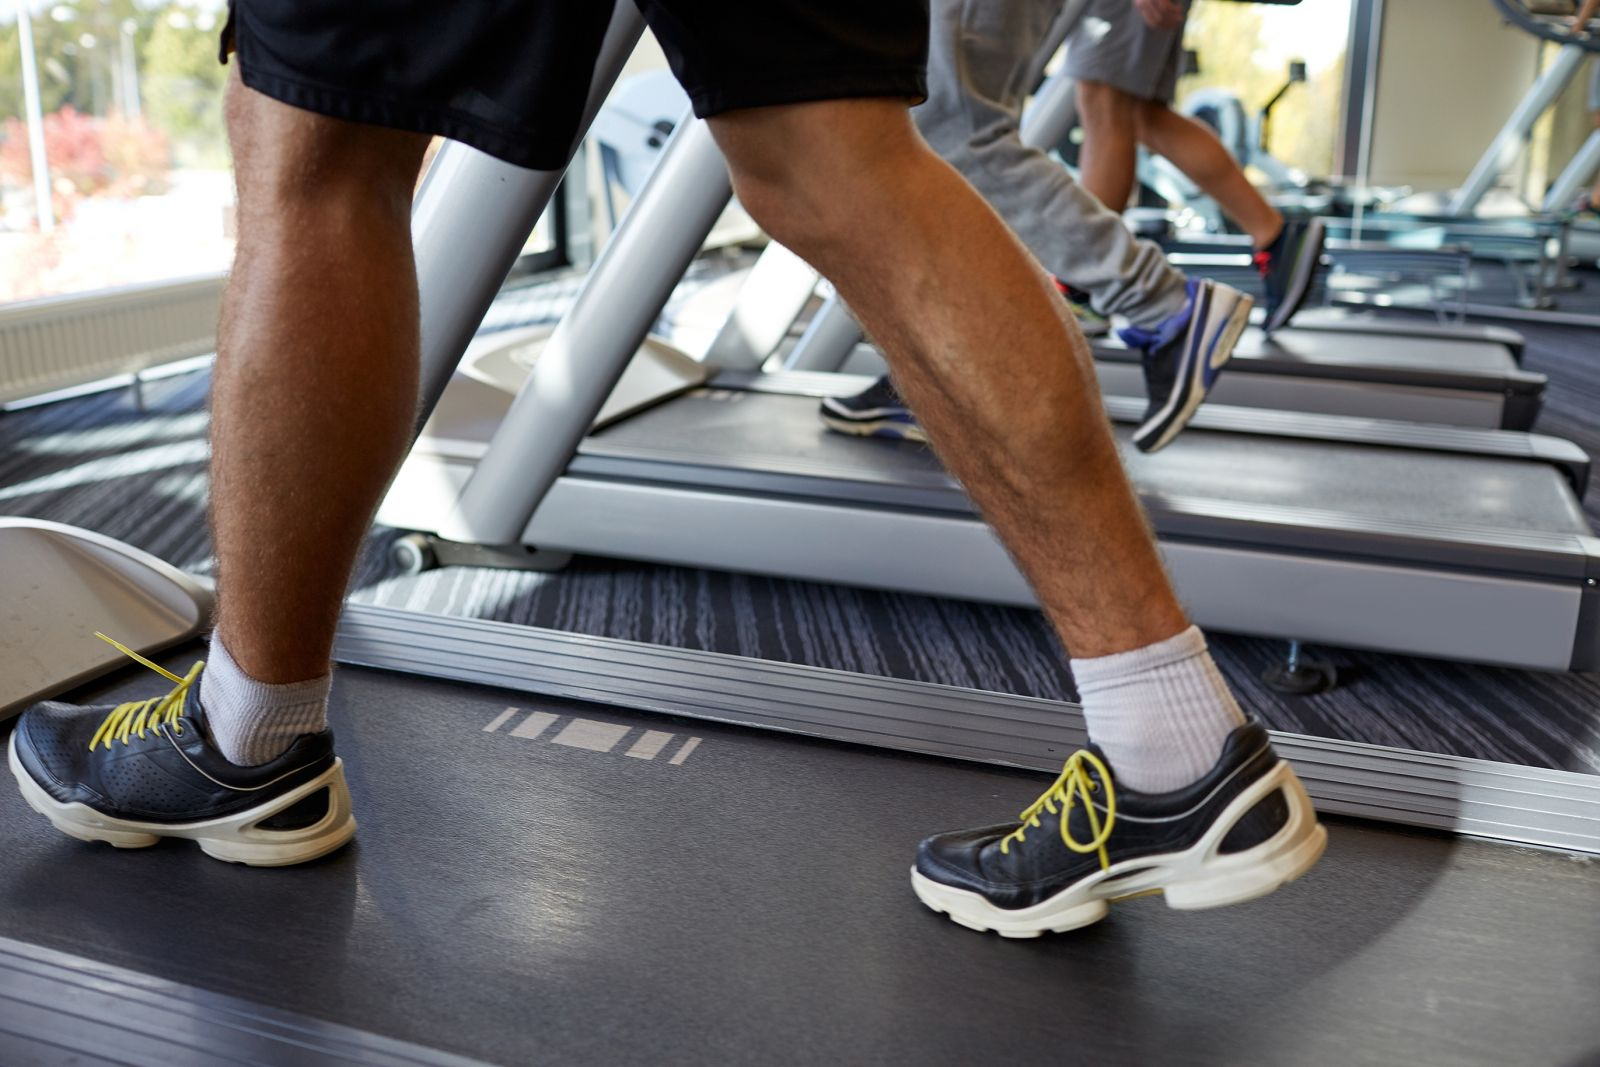 4 ways exercise helps arthritis